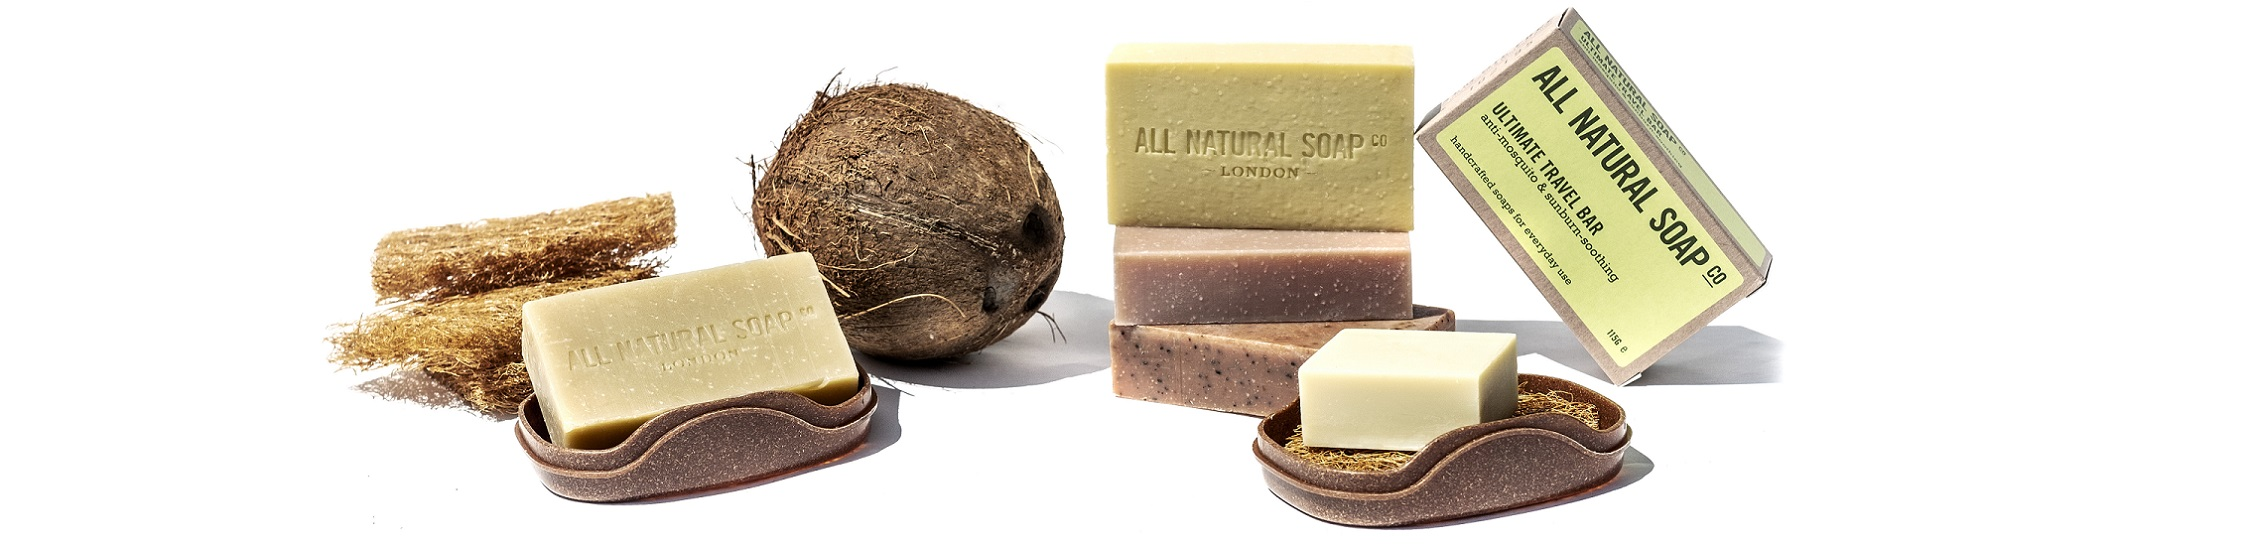 Travel-Soap-Case_ALL-NATURAL-SOAP-Co